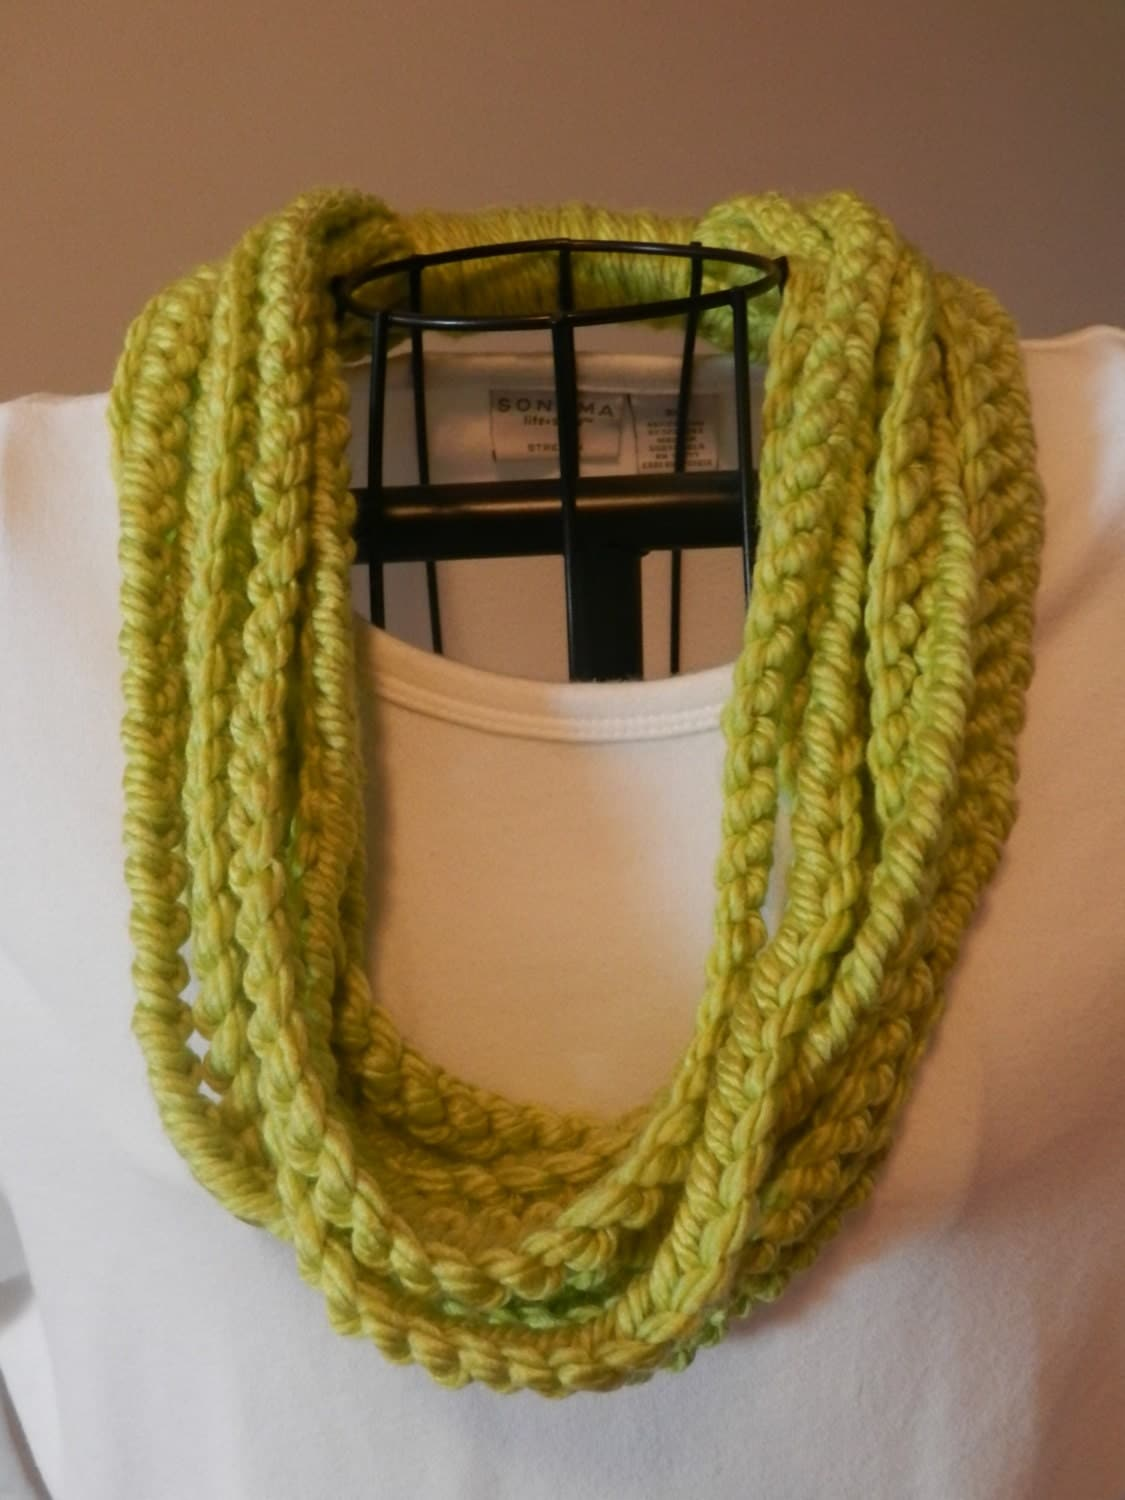 Crochet Chain Stitch : Crocheted Chain Stitch Scarf/ One Loop Scarf/ Lime by AprilsCrafts